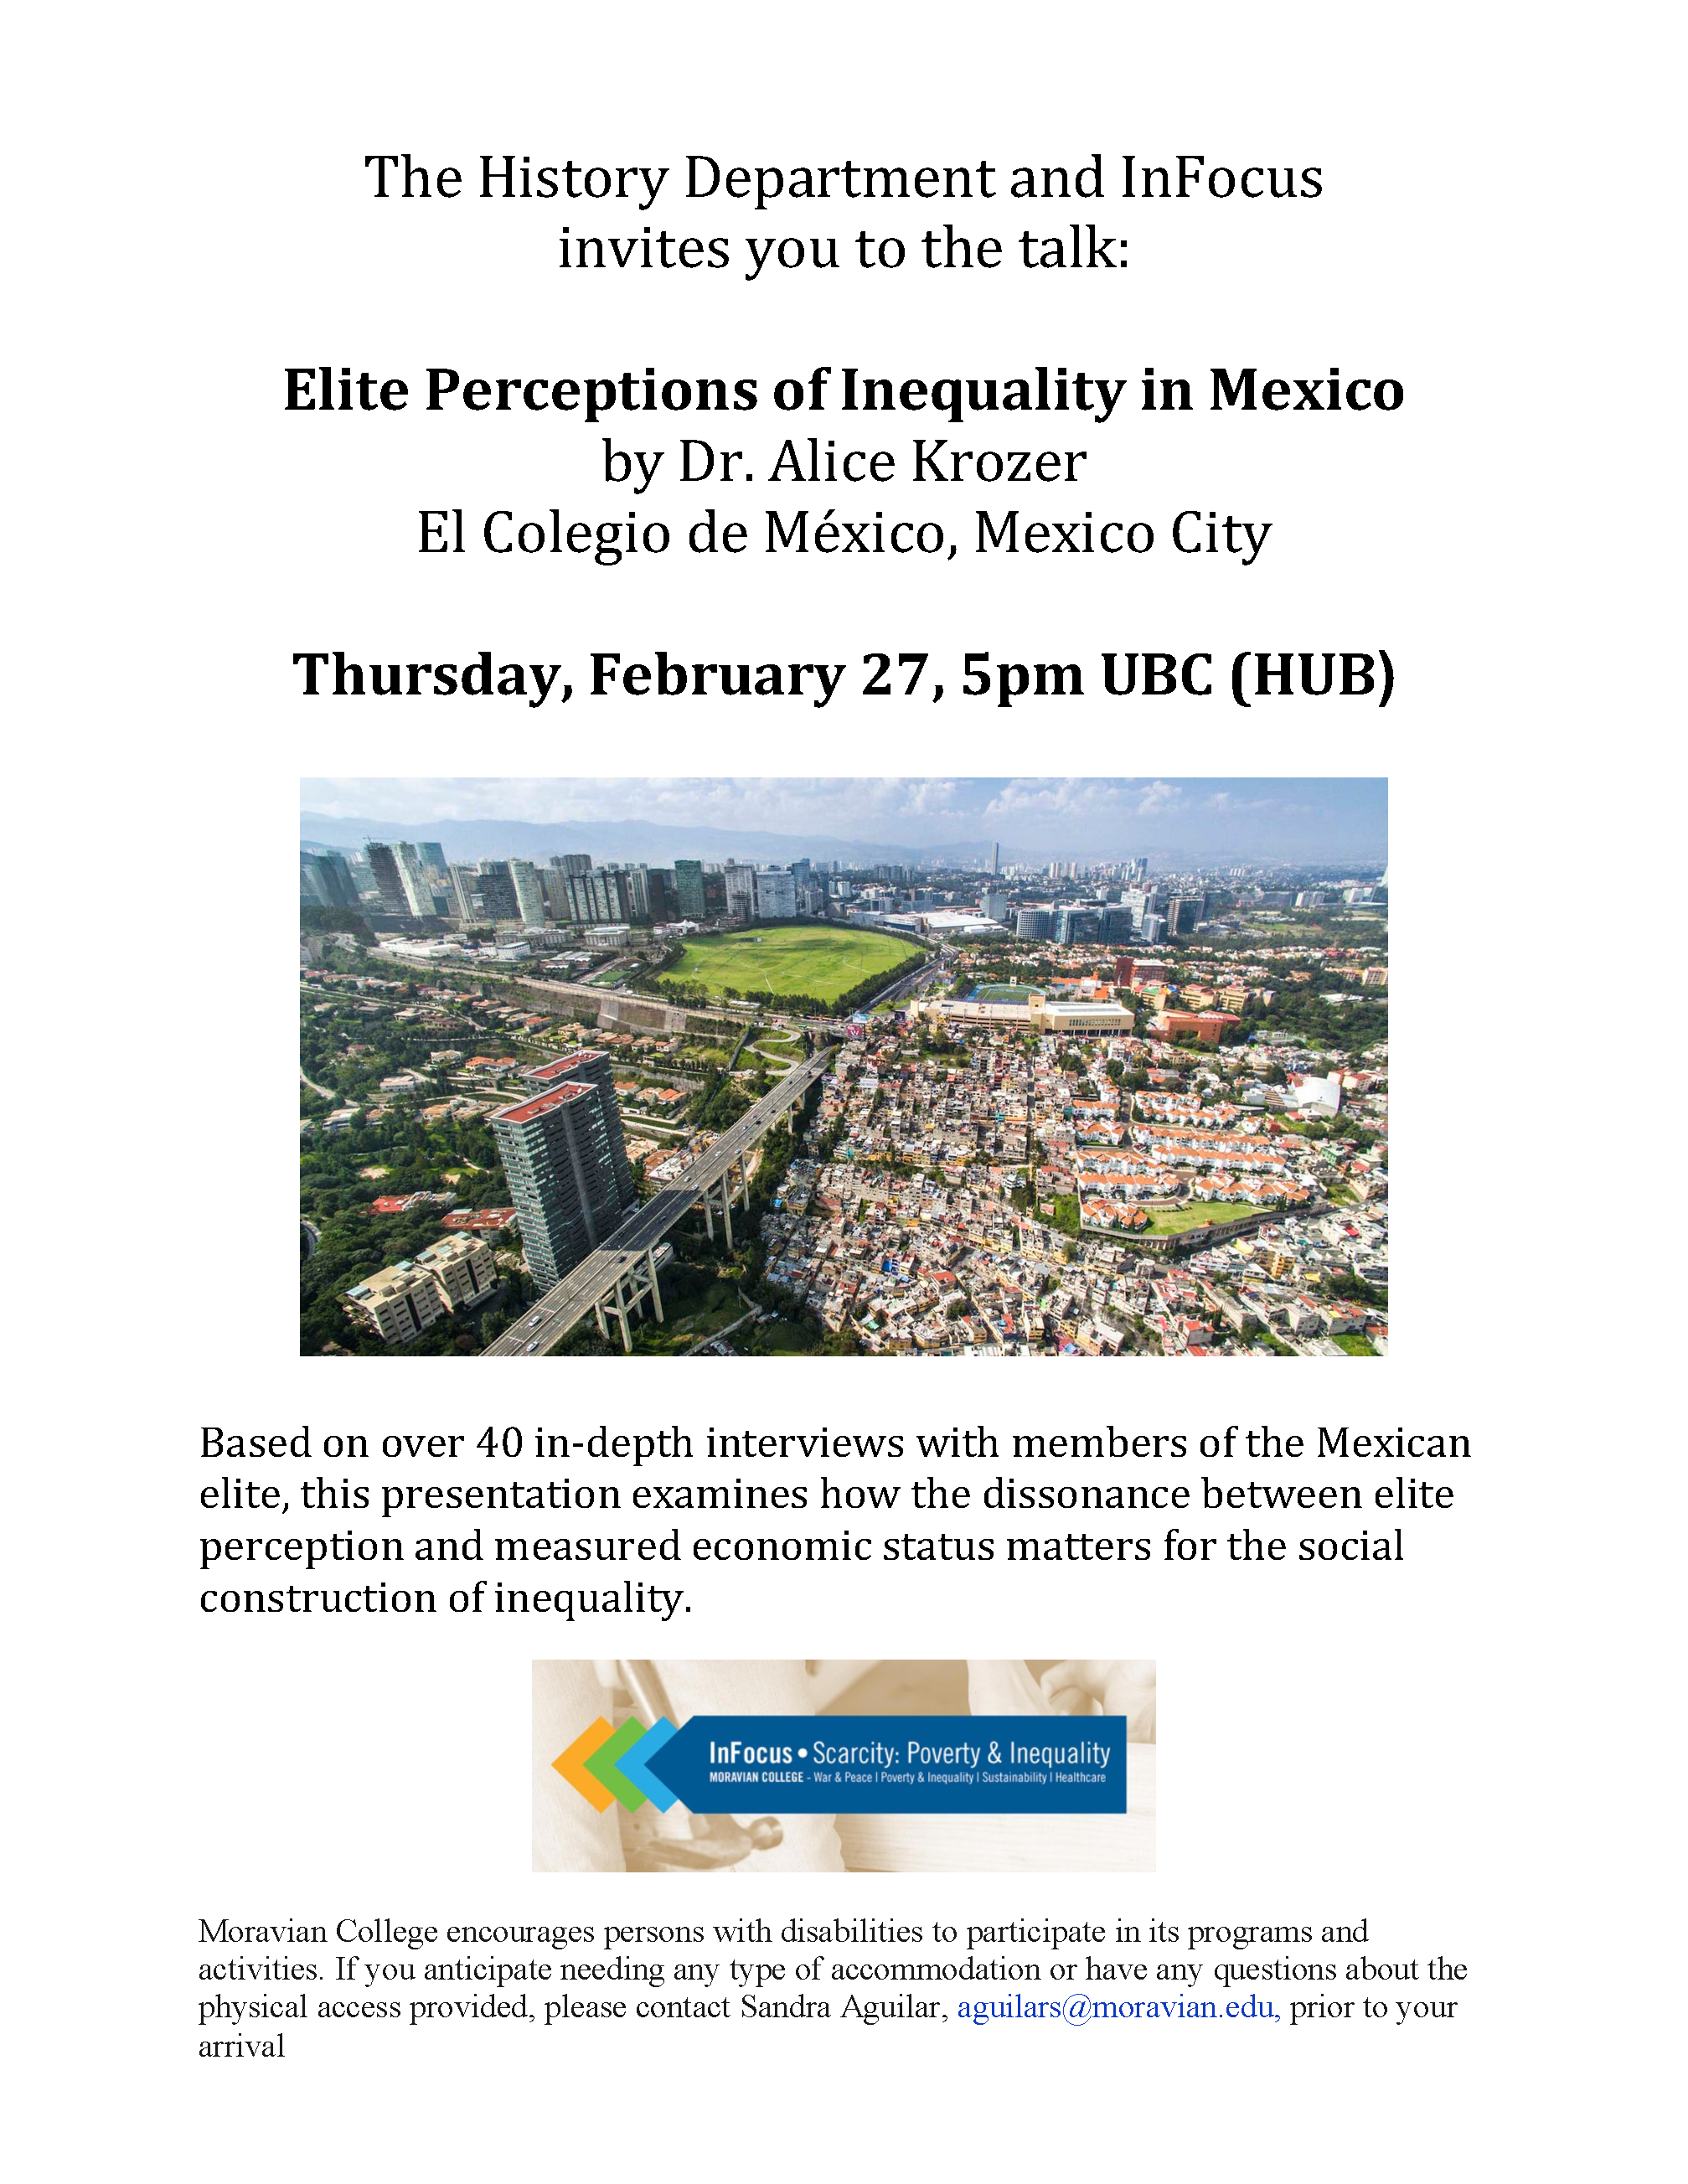 Elite Perceptions of Inequality in Mexico